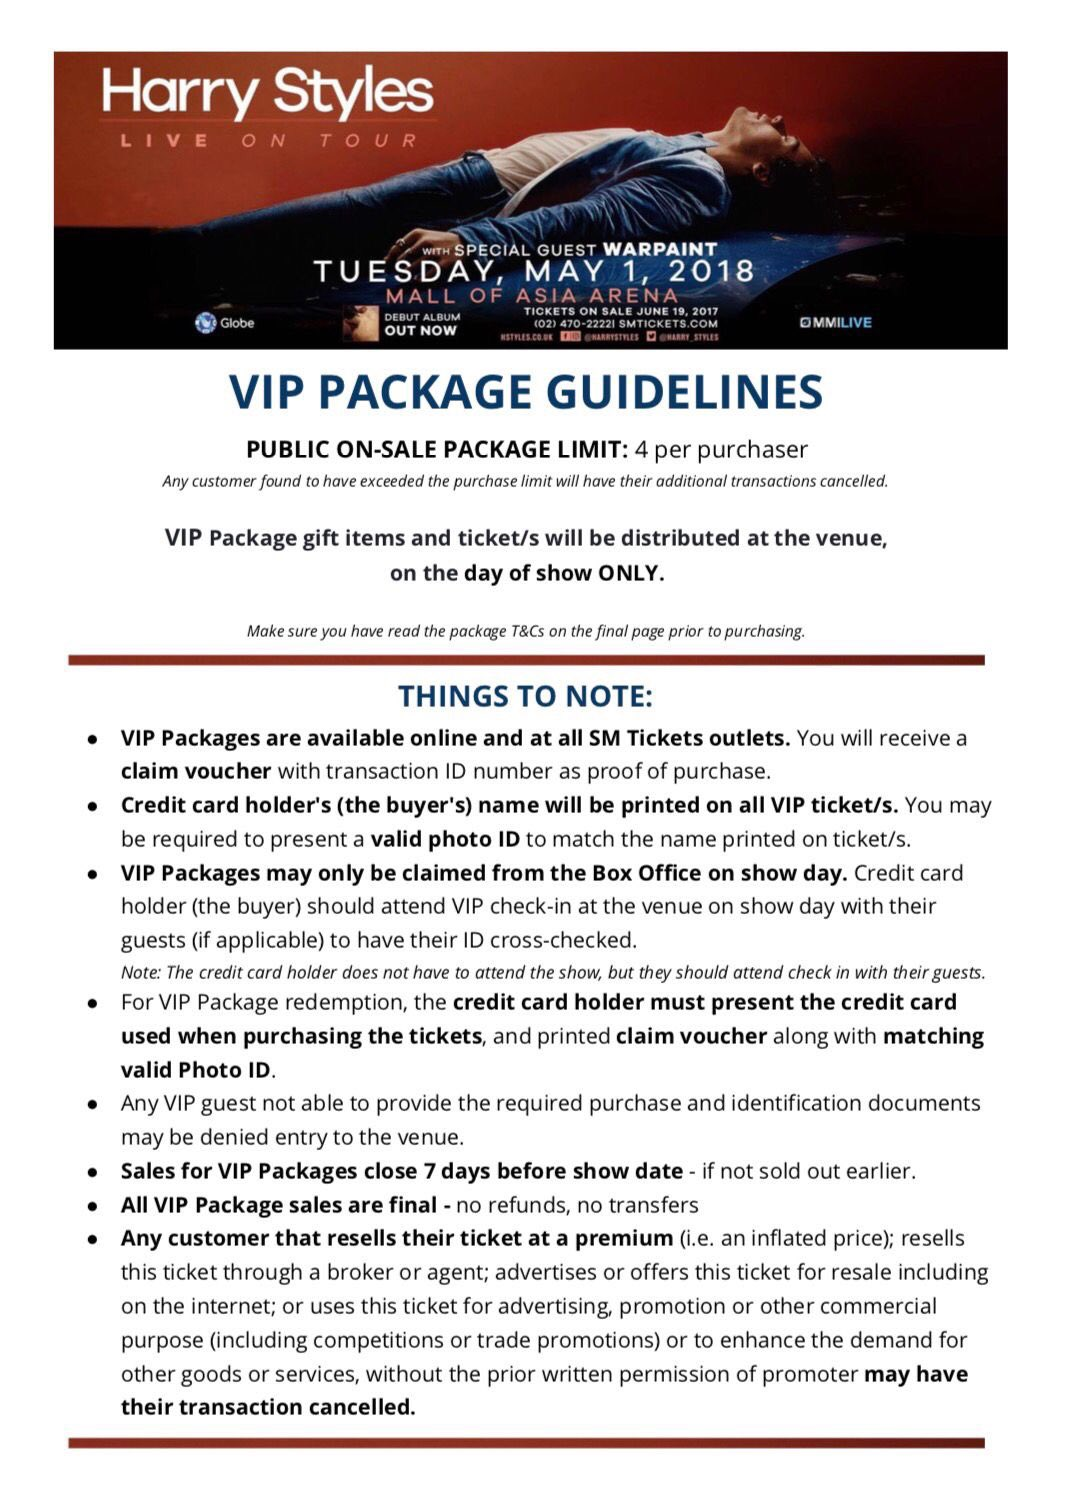 Harry Styles Ph On Twitter Vip Package Guidelines Terms